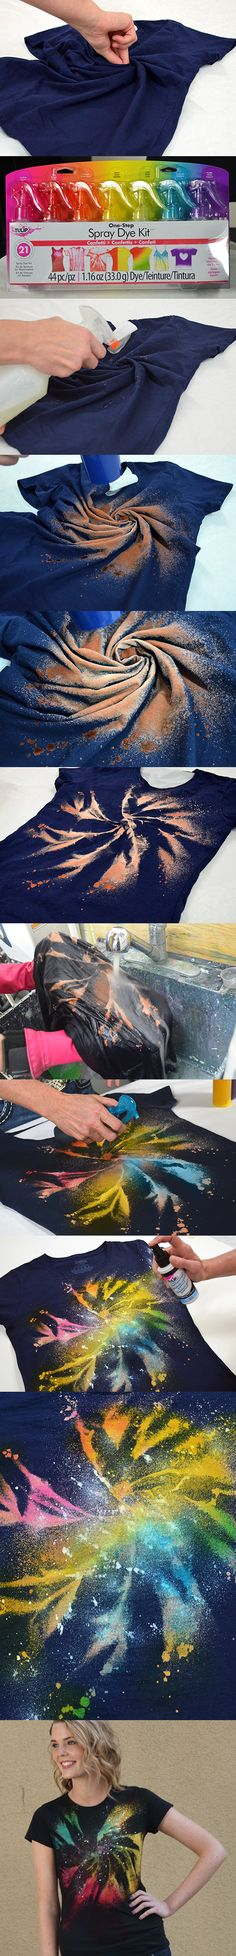 Spiral Galaxy shirt - Twist shirt, spray bleach, then add colors...or just leave bleached.